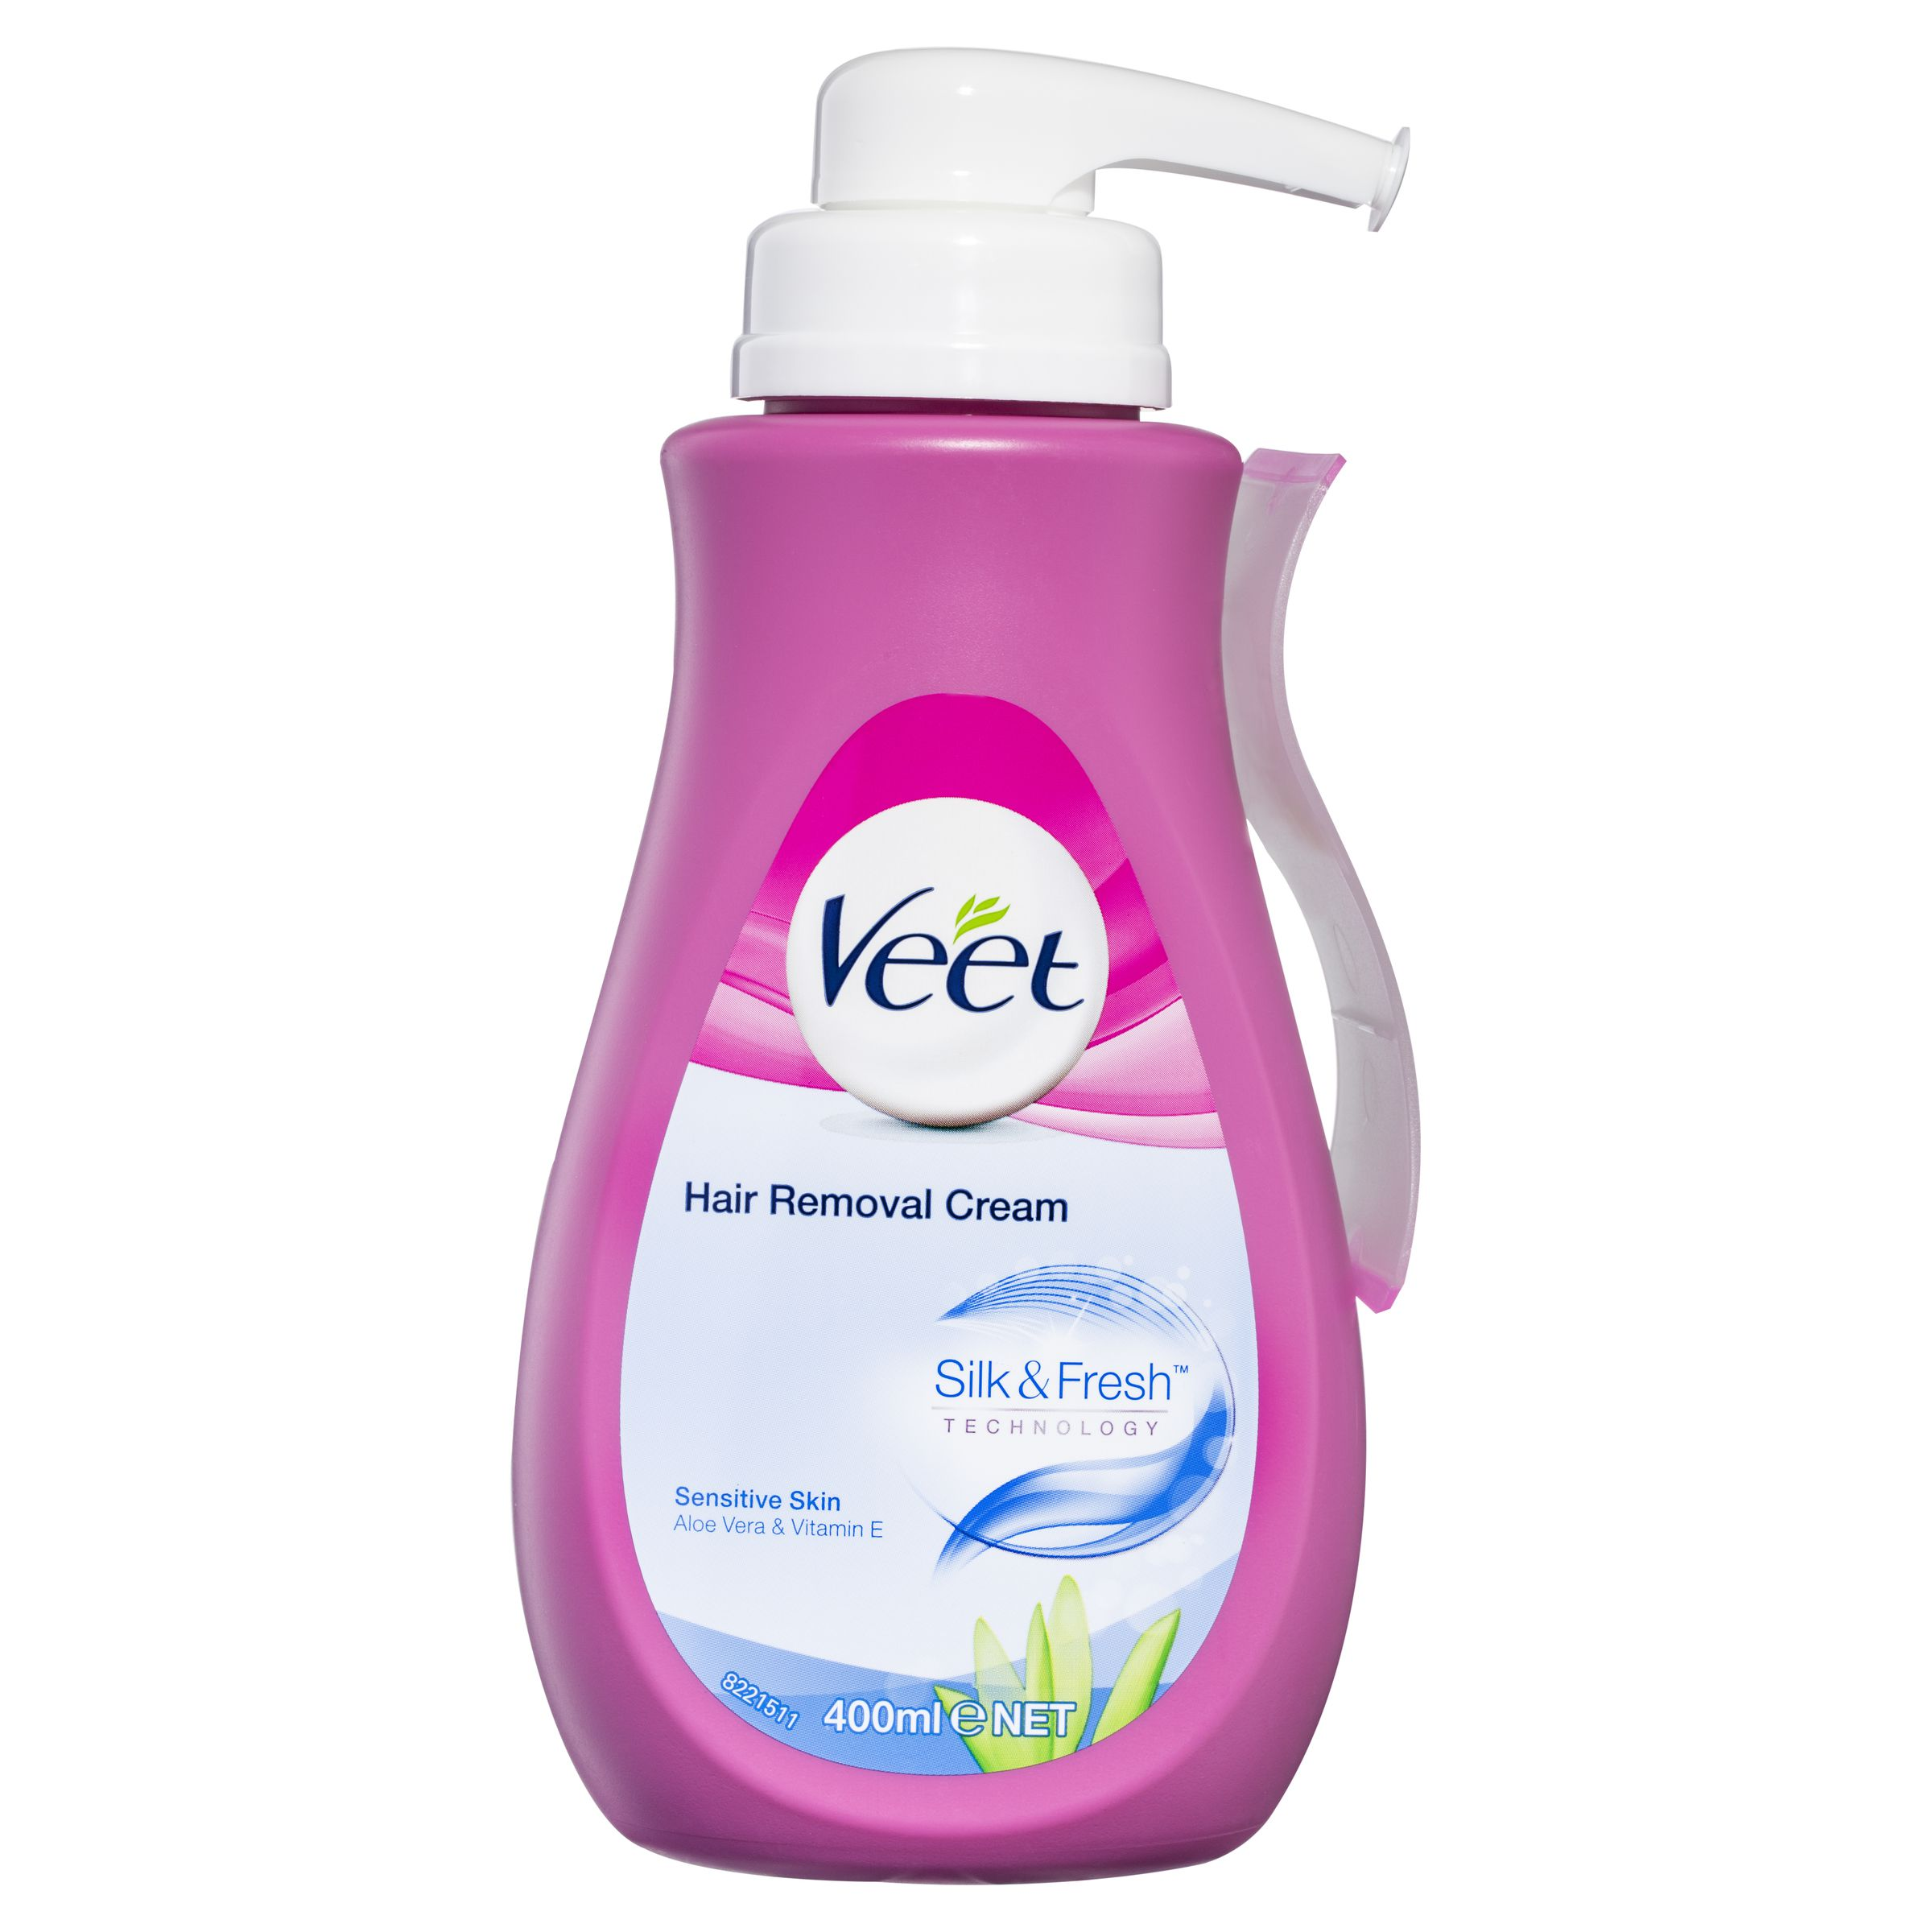 Veet Hair Removal Cream For Sensitive Skin 400ml Veet New Zealand